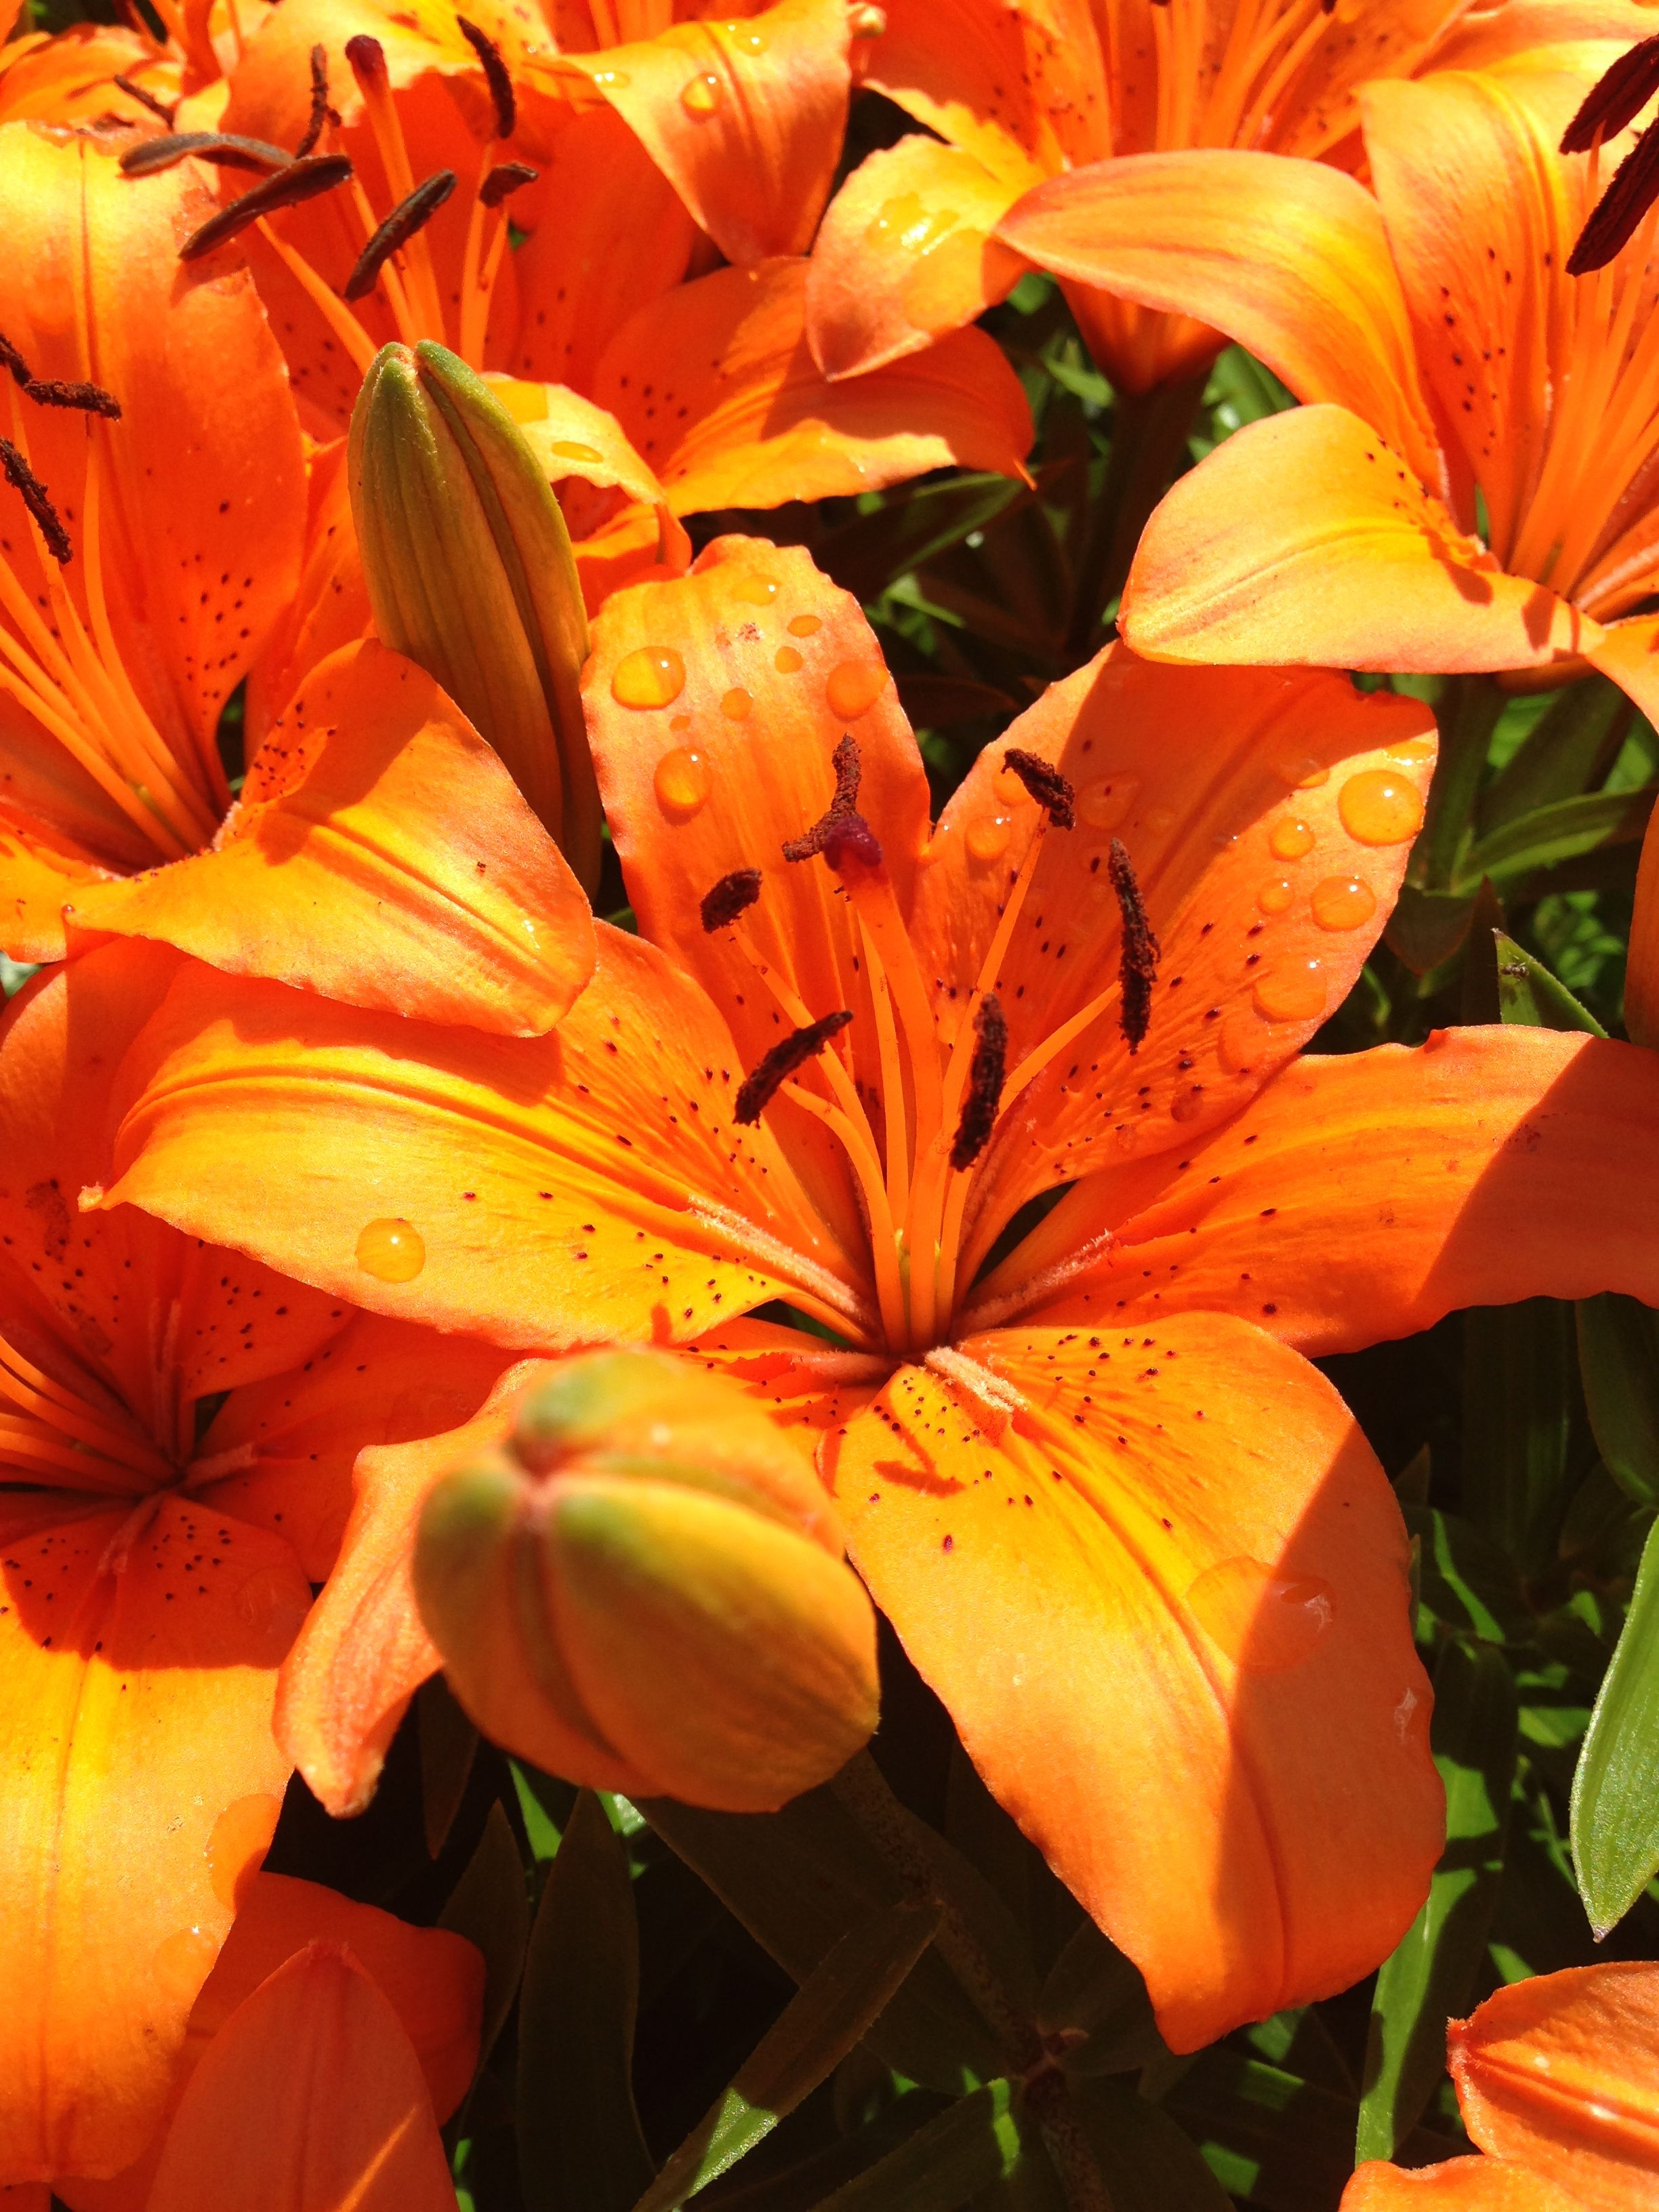 Flowers With Dew Drops Love The Orange Lily Flowers Plants